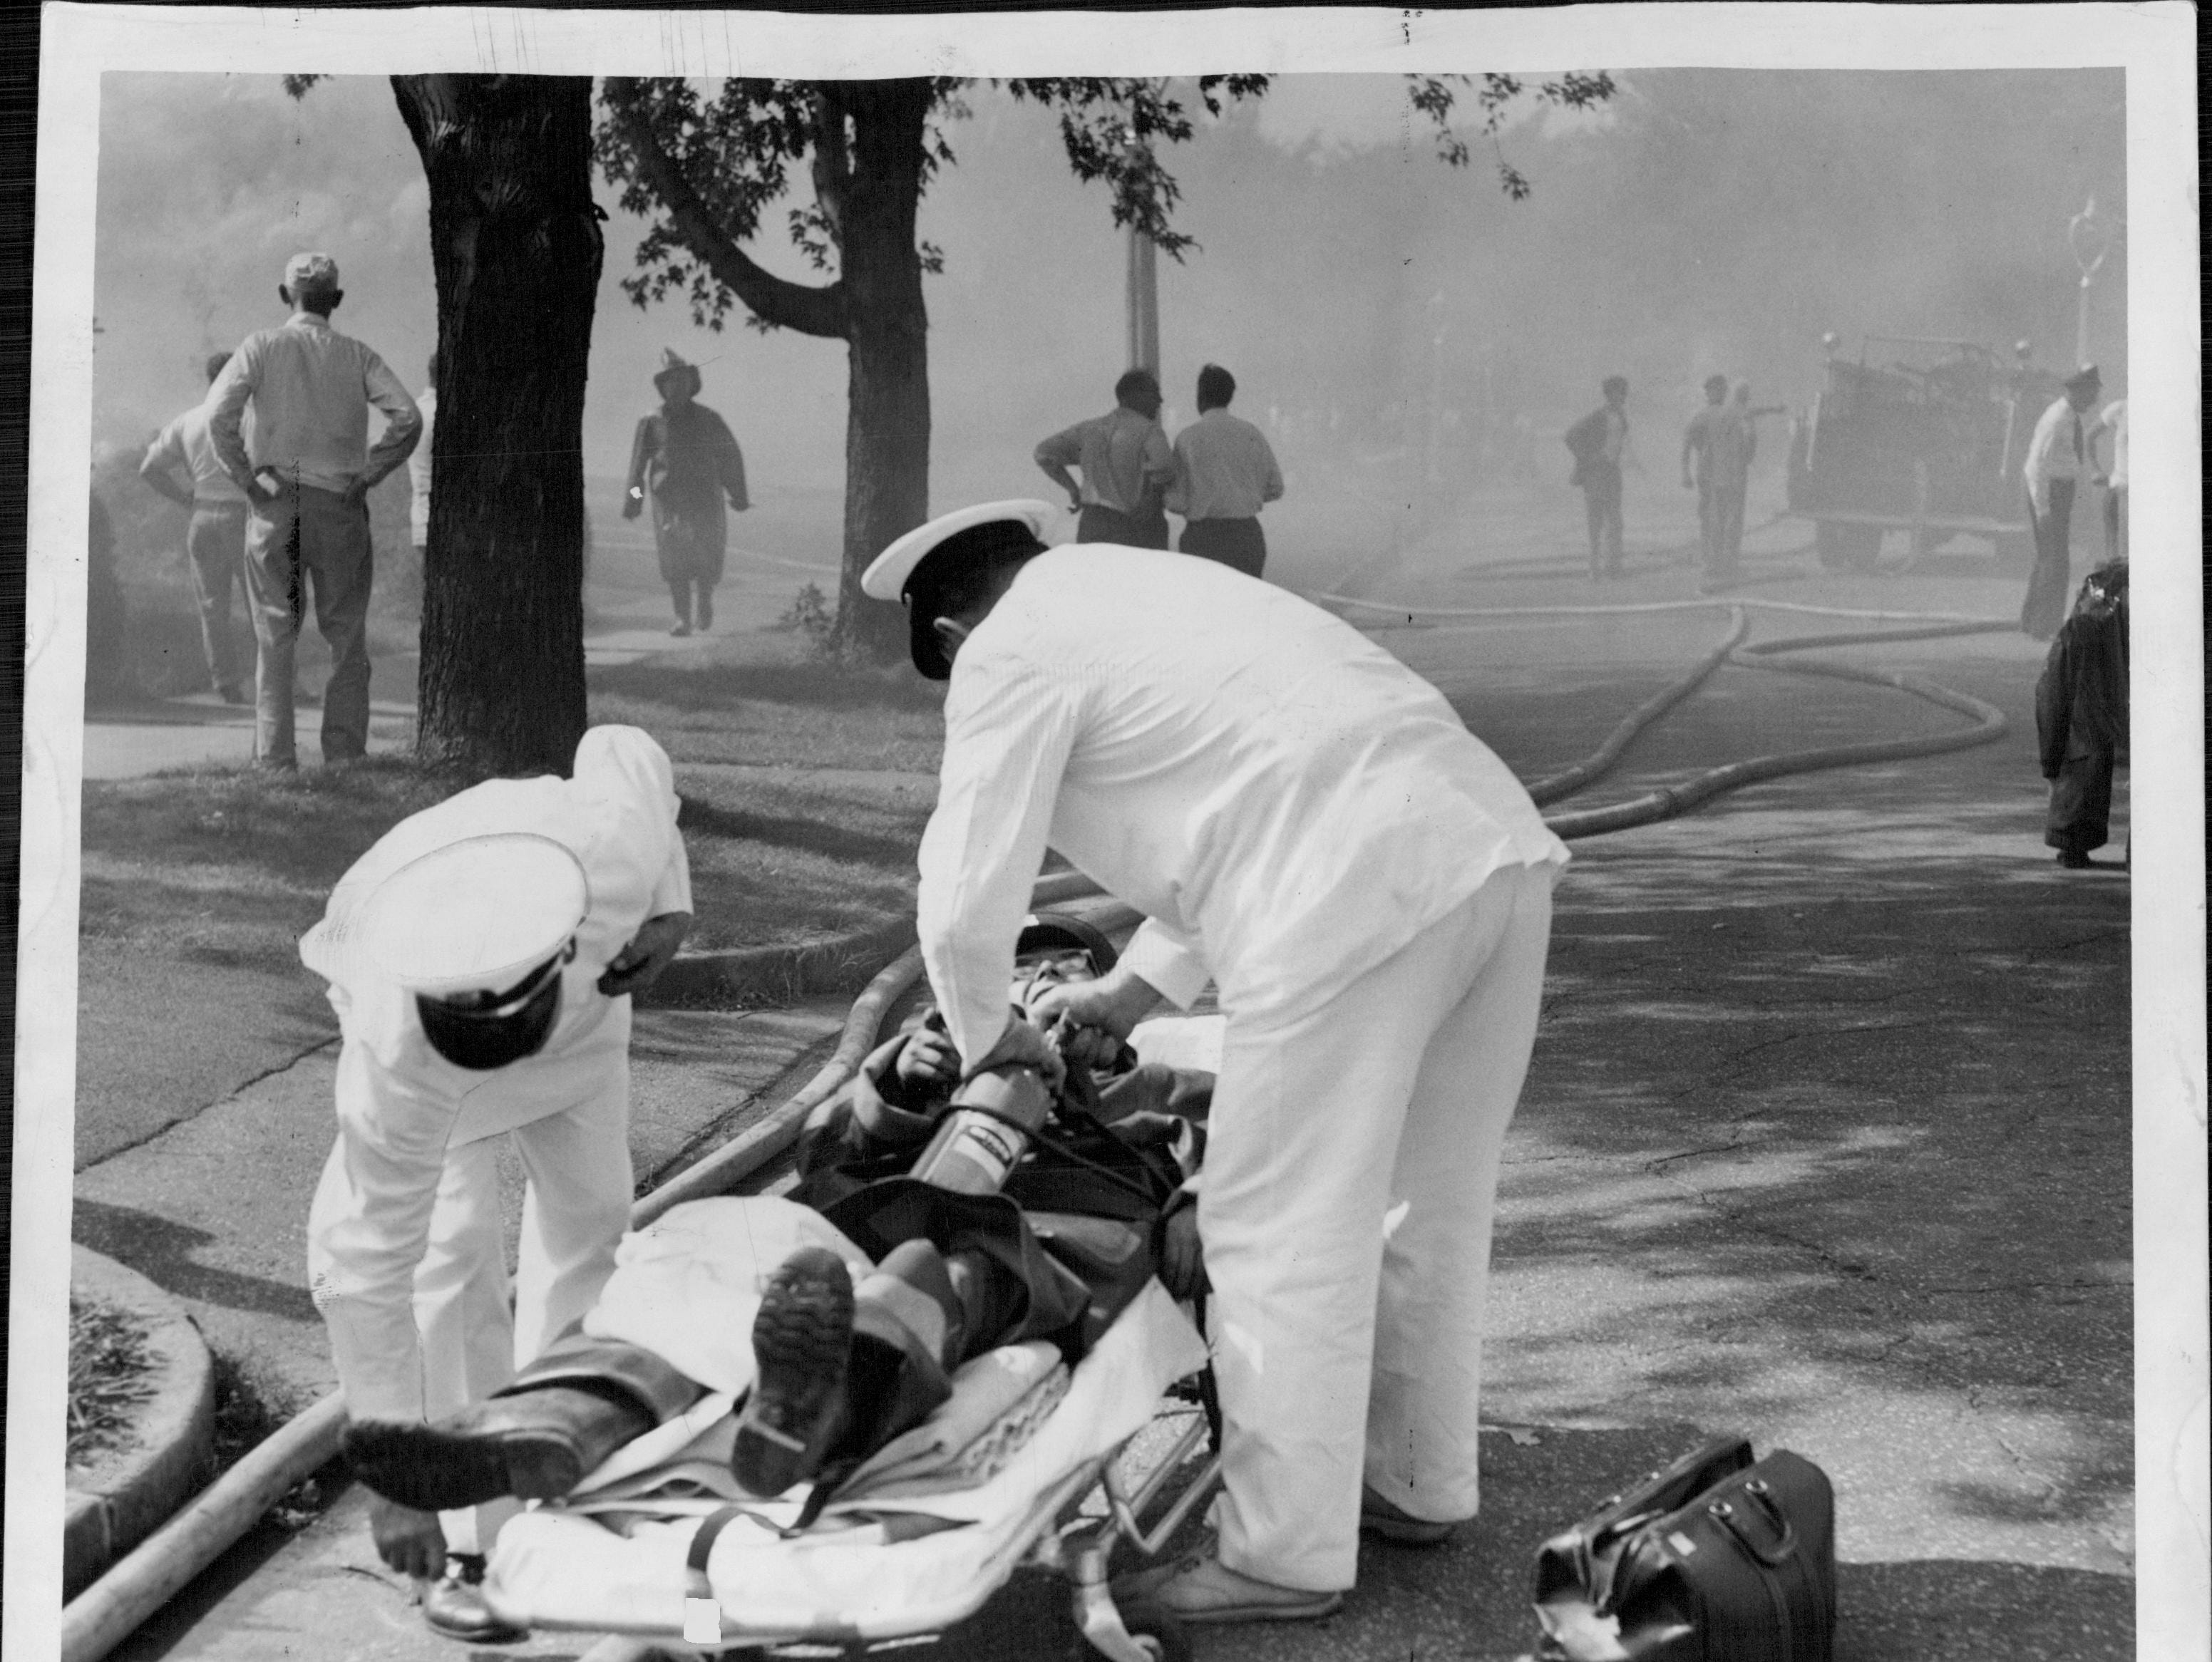 Ambulance crew tends to an injured person. (Staff photo, 9/21/1951)